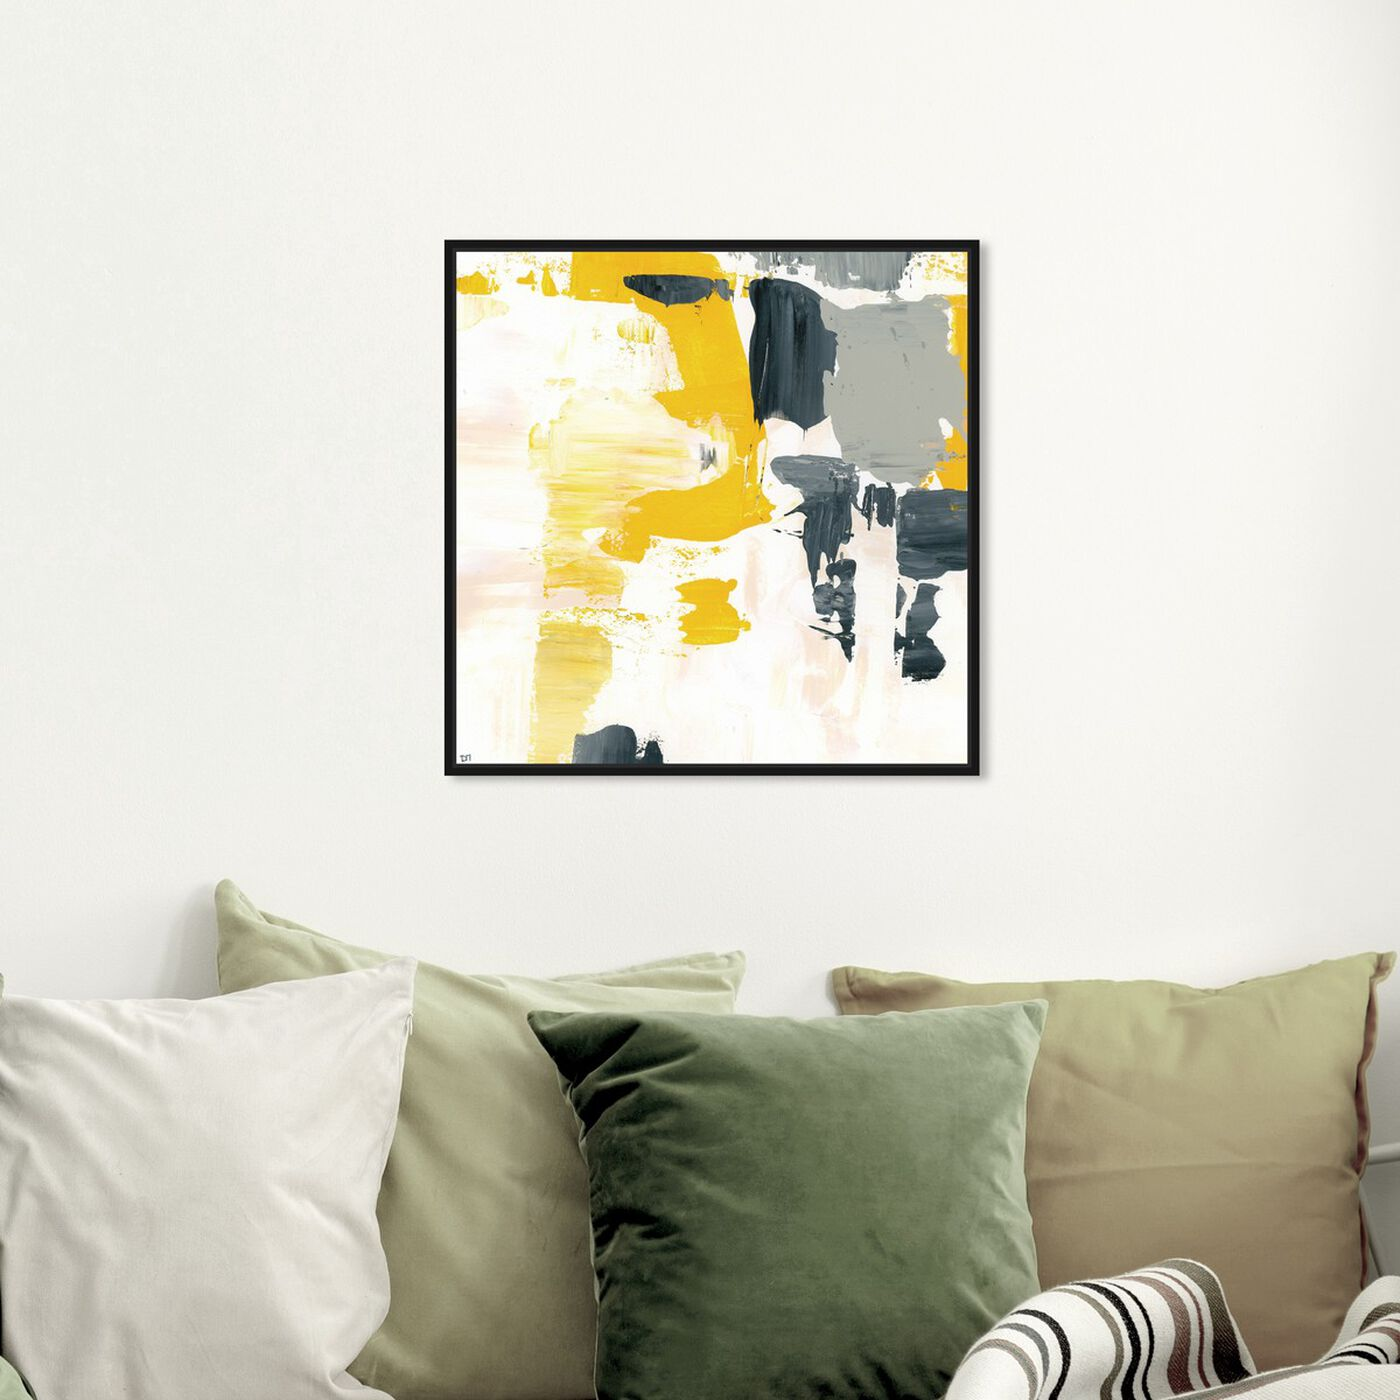 Hanging view of Gris Mostaza Yolk featuring abstract and paint art.